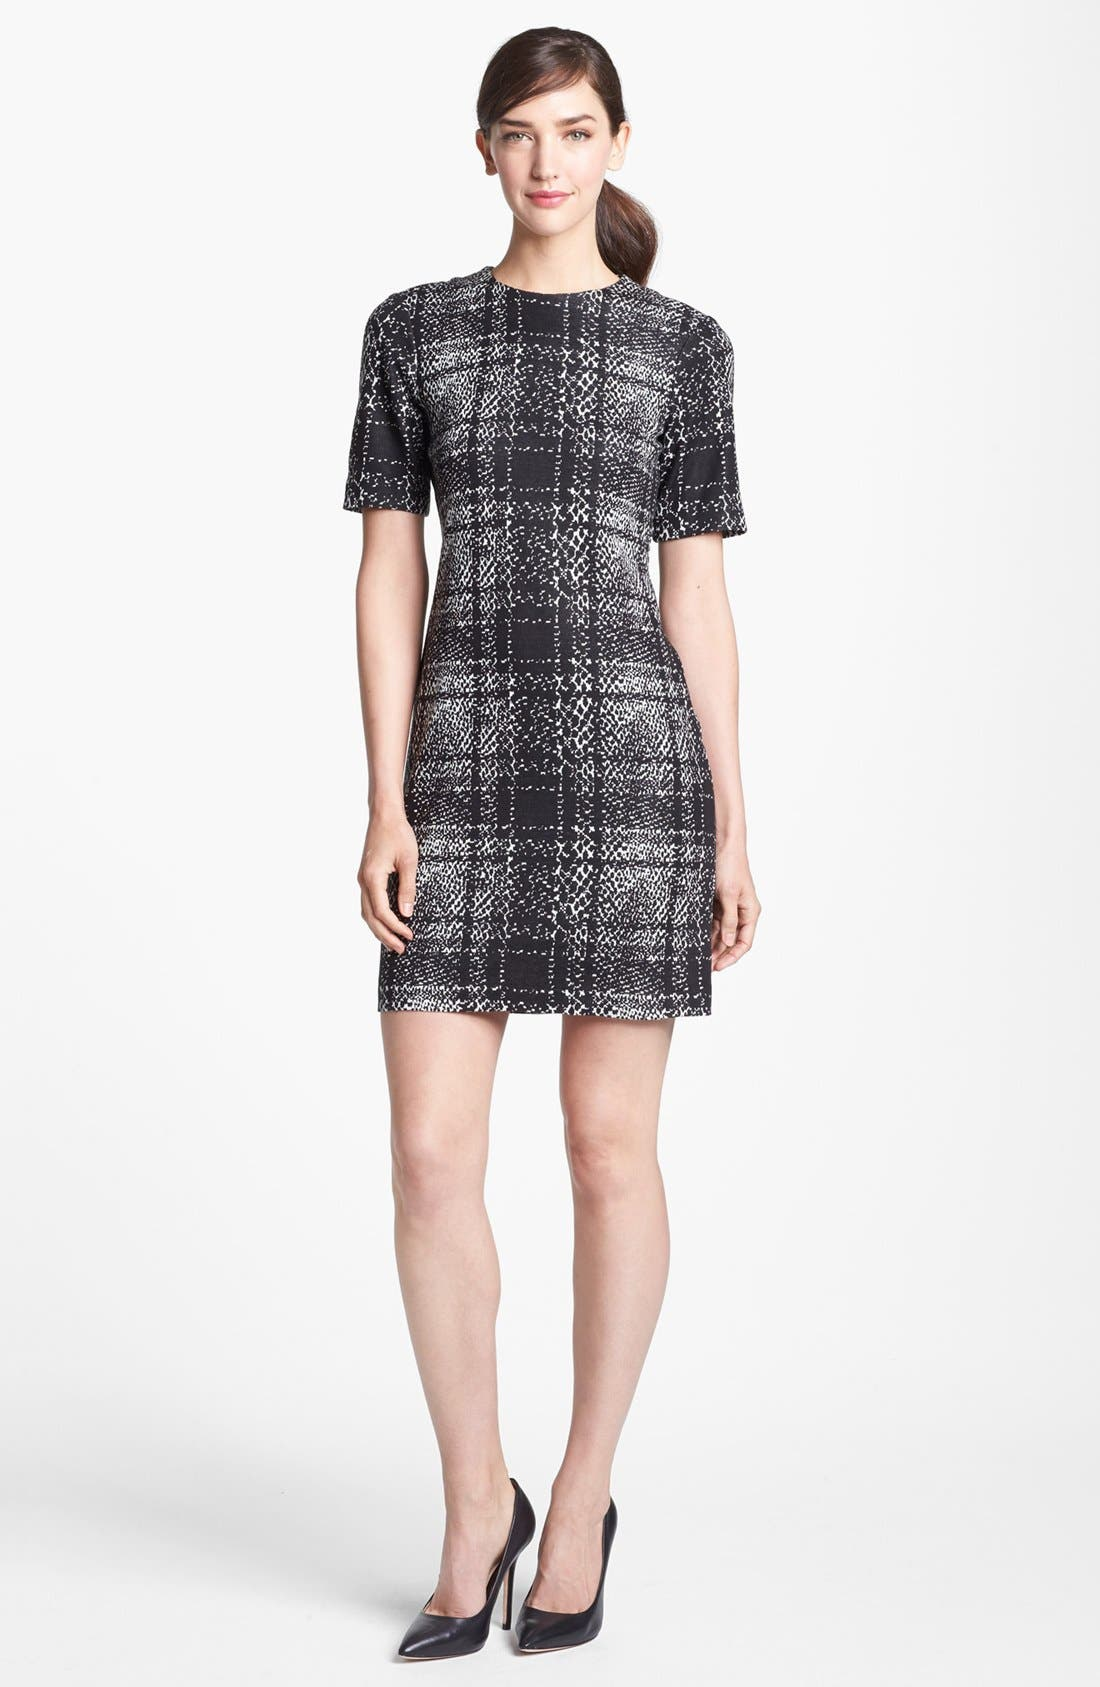 Alternate Image 1 Selected - 4.collective Mixed Print Sheath Dress